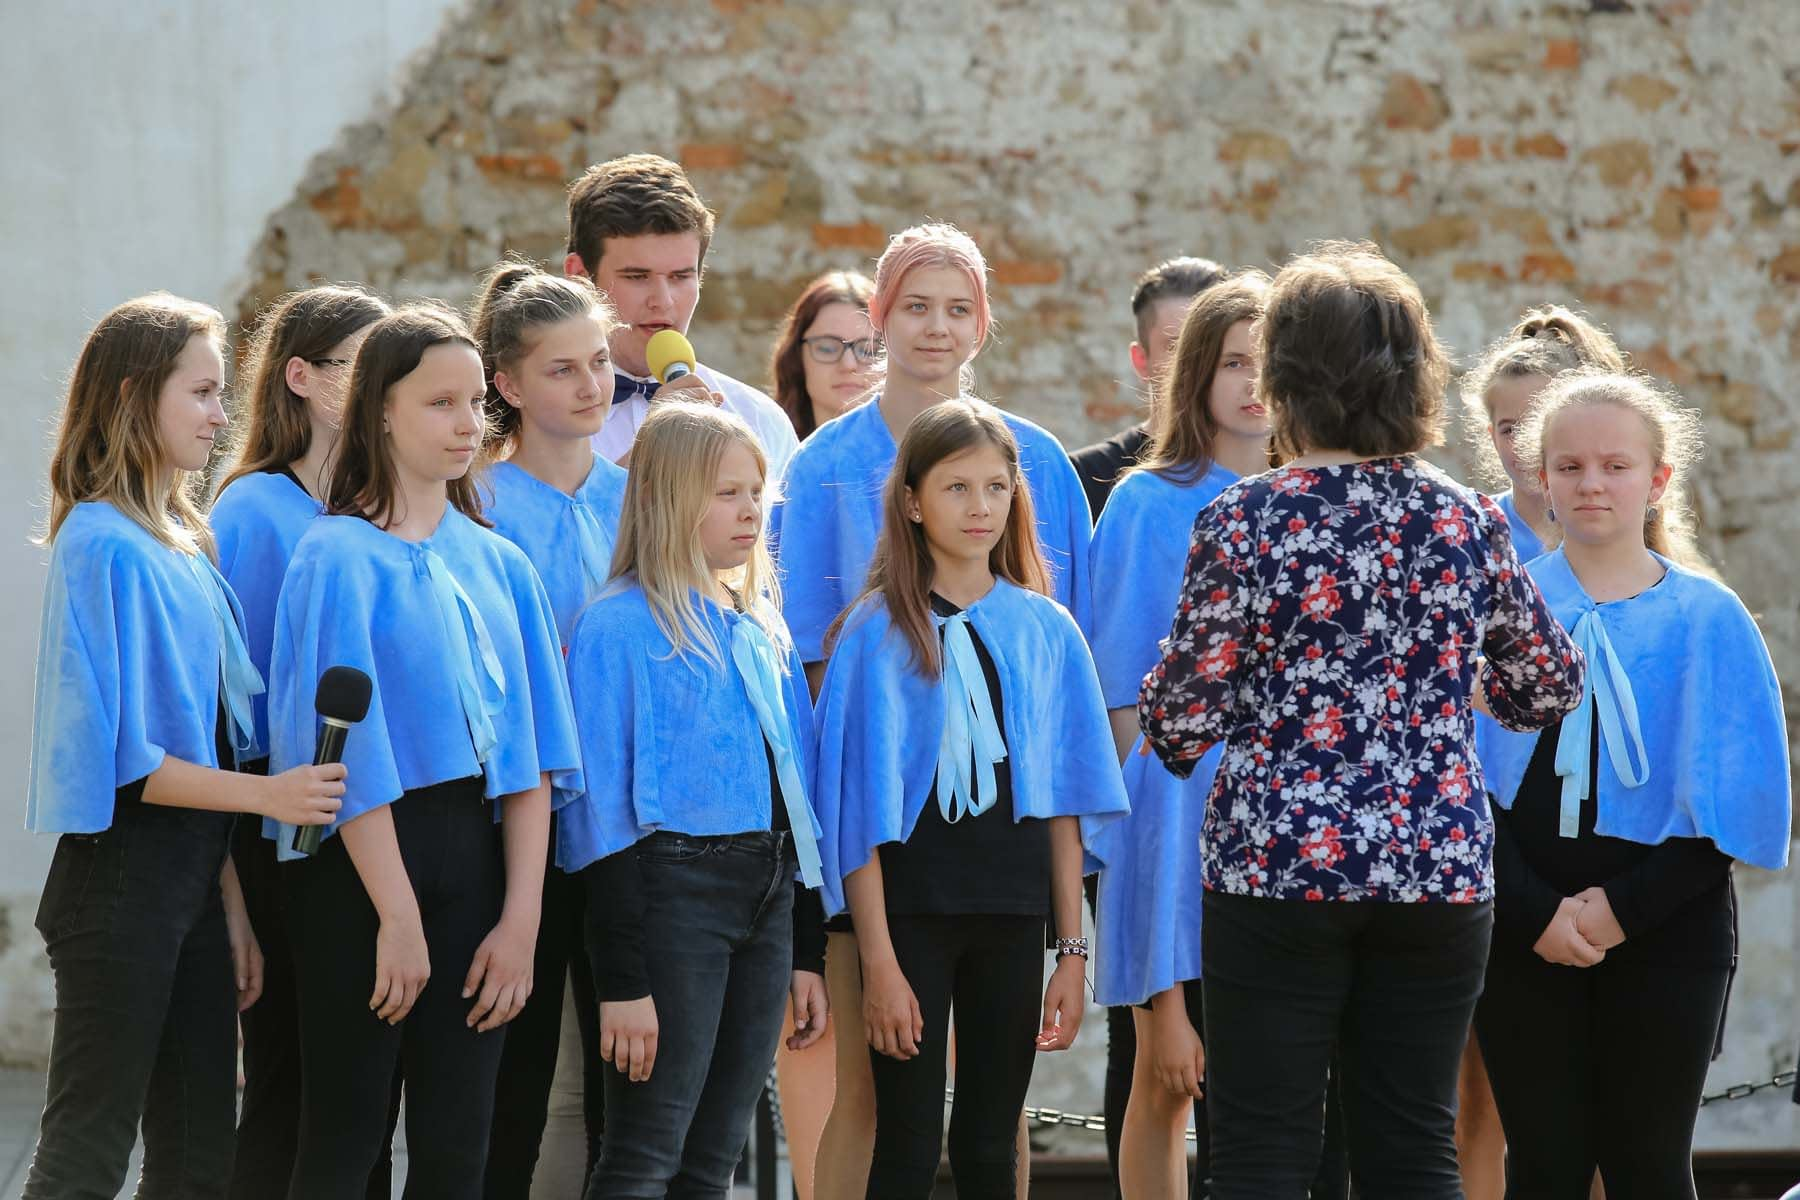 The ceremony inside the Memorial concluded with beautiful Hebrew singing of Hana Senesh's 'Eli, Eli' by the 'Blue Art School's' children's choir in Bardejov, led by Marta and Eduard Kmeť